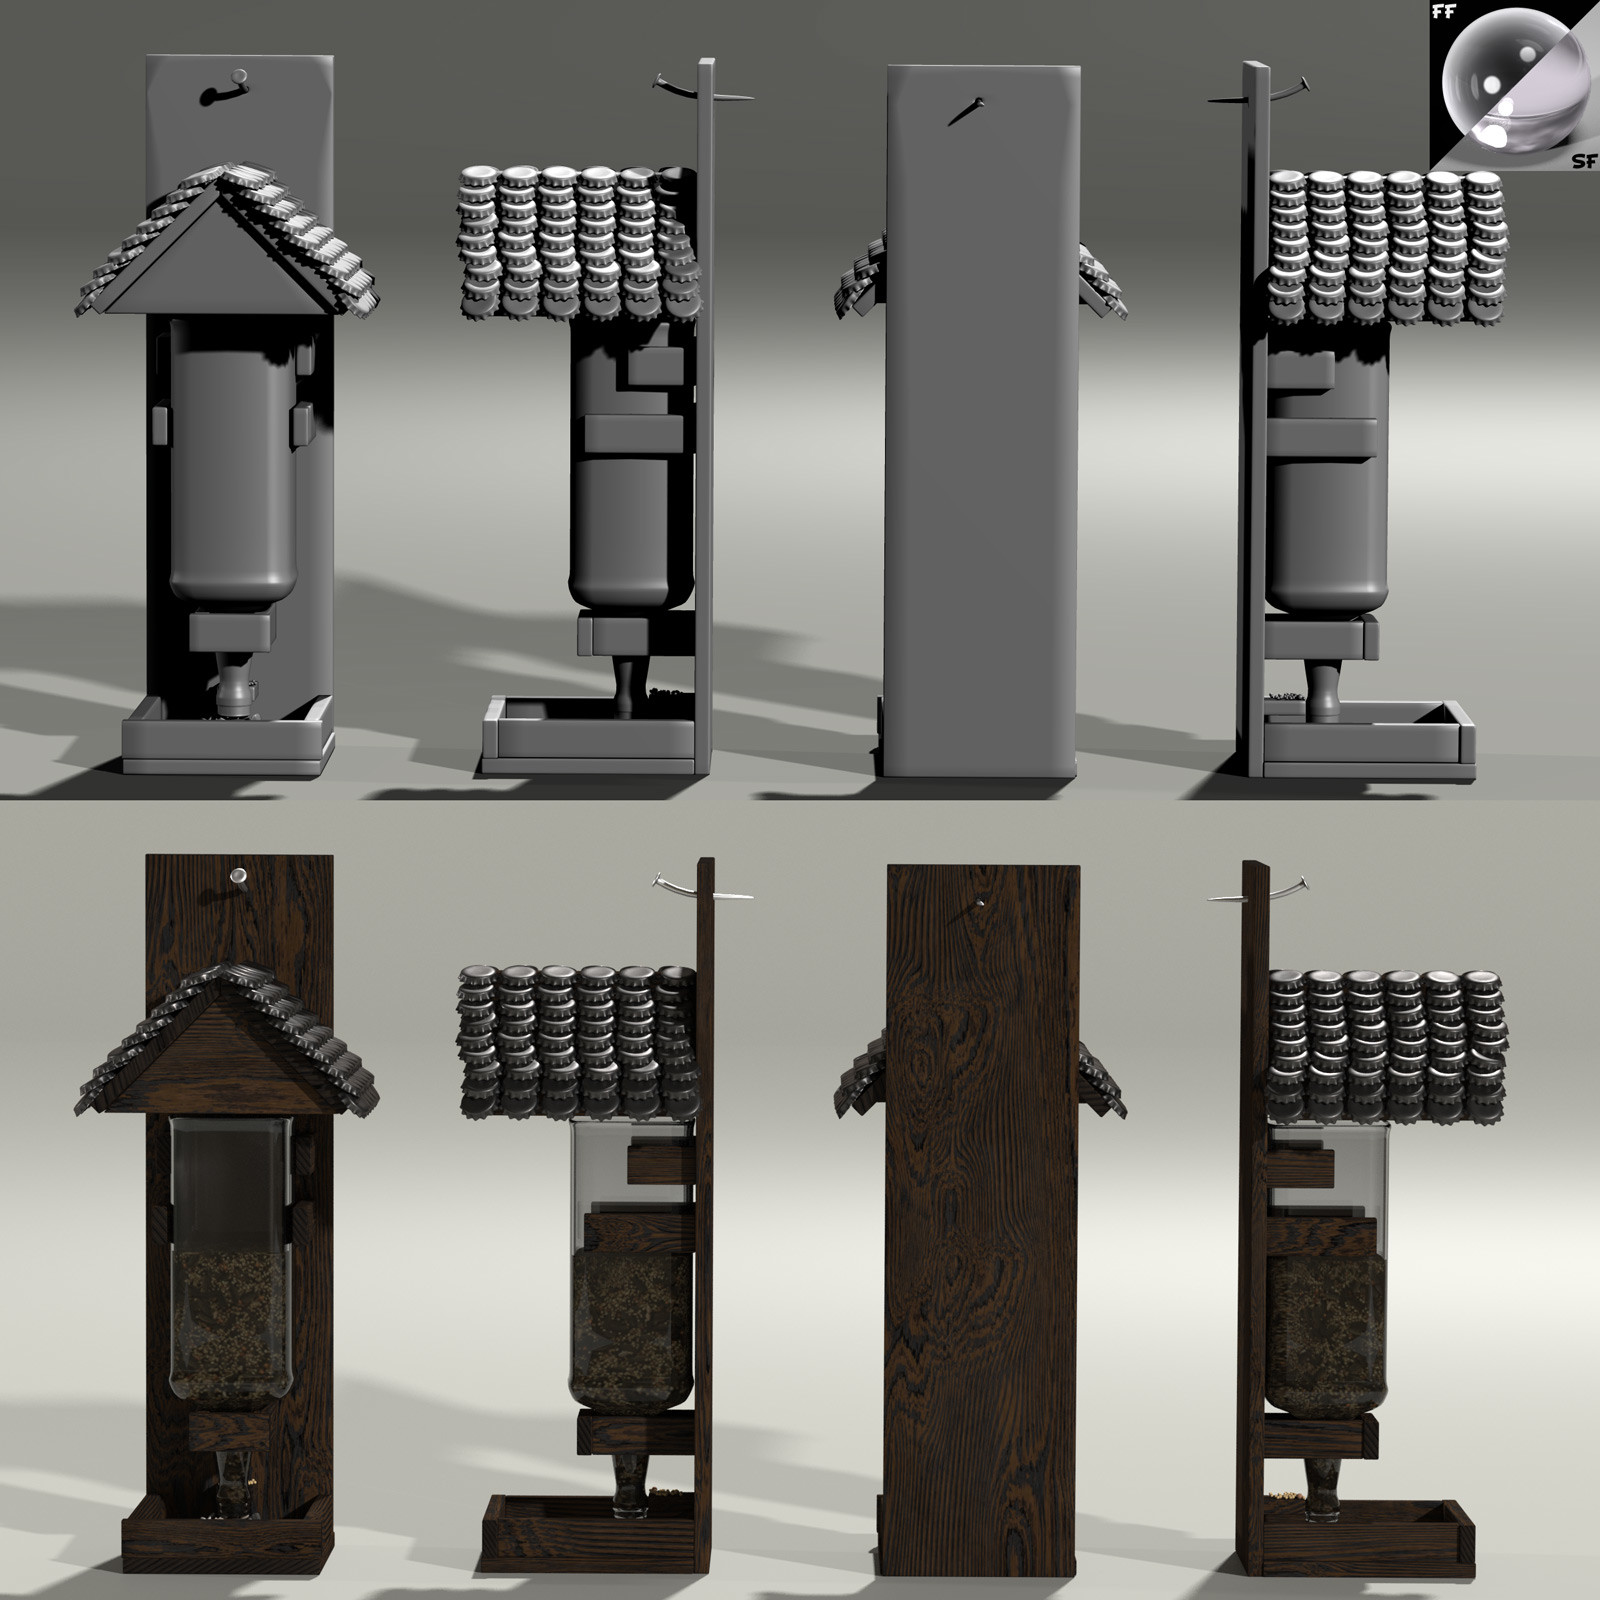 This is a 360 degree turnaround of the whiskey bottle-based feeder, rendered in Poser with SuperFly/Cycles.